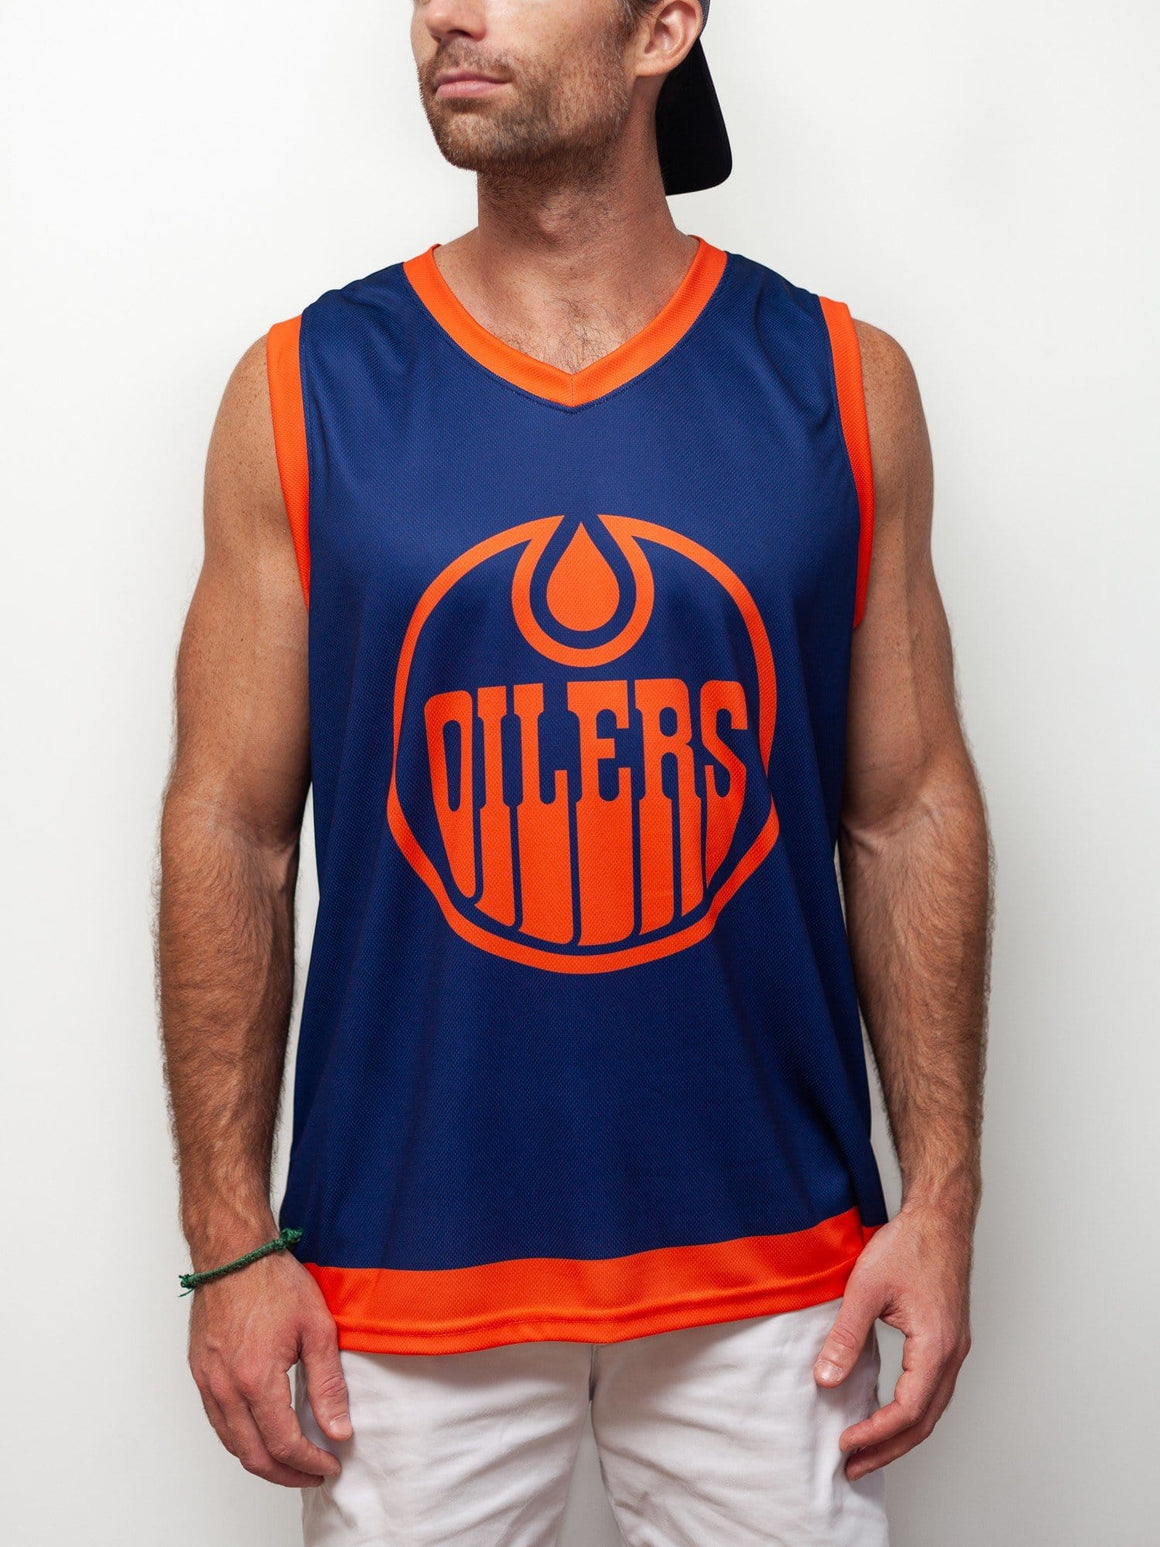 Edmonton Oilers 2019-20 Alternate Hockey Tank